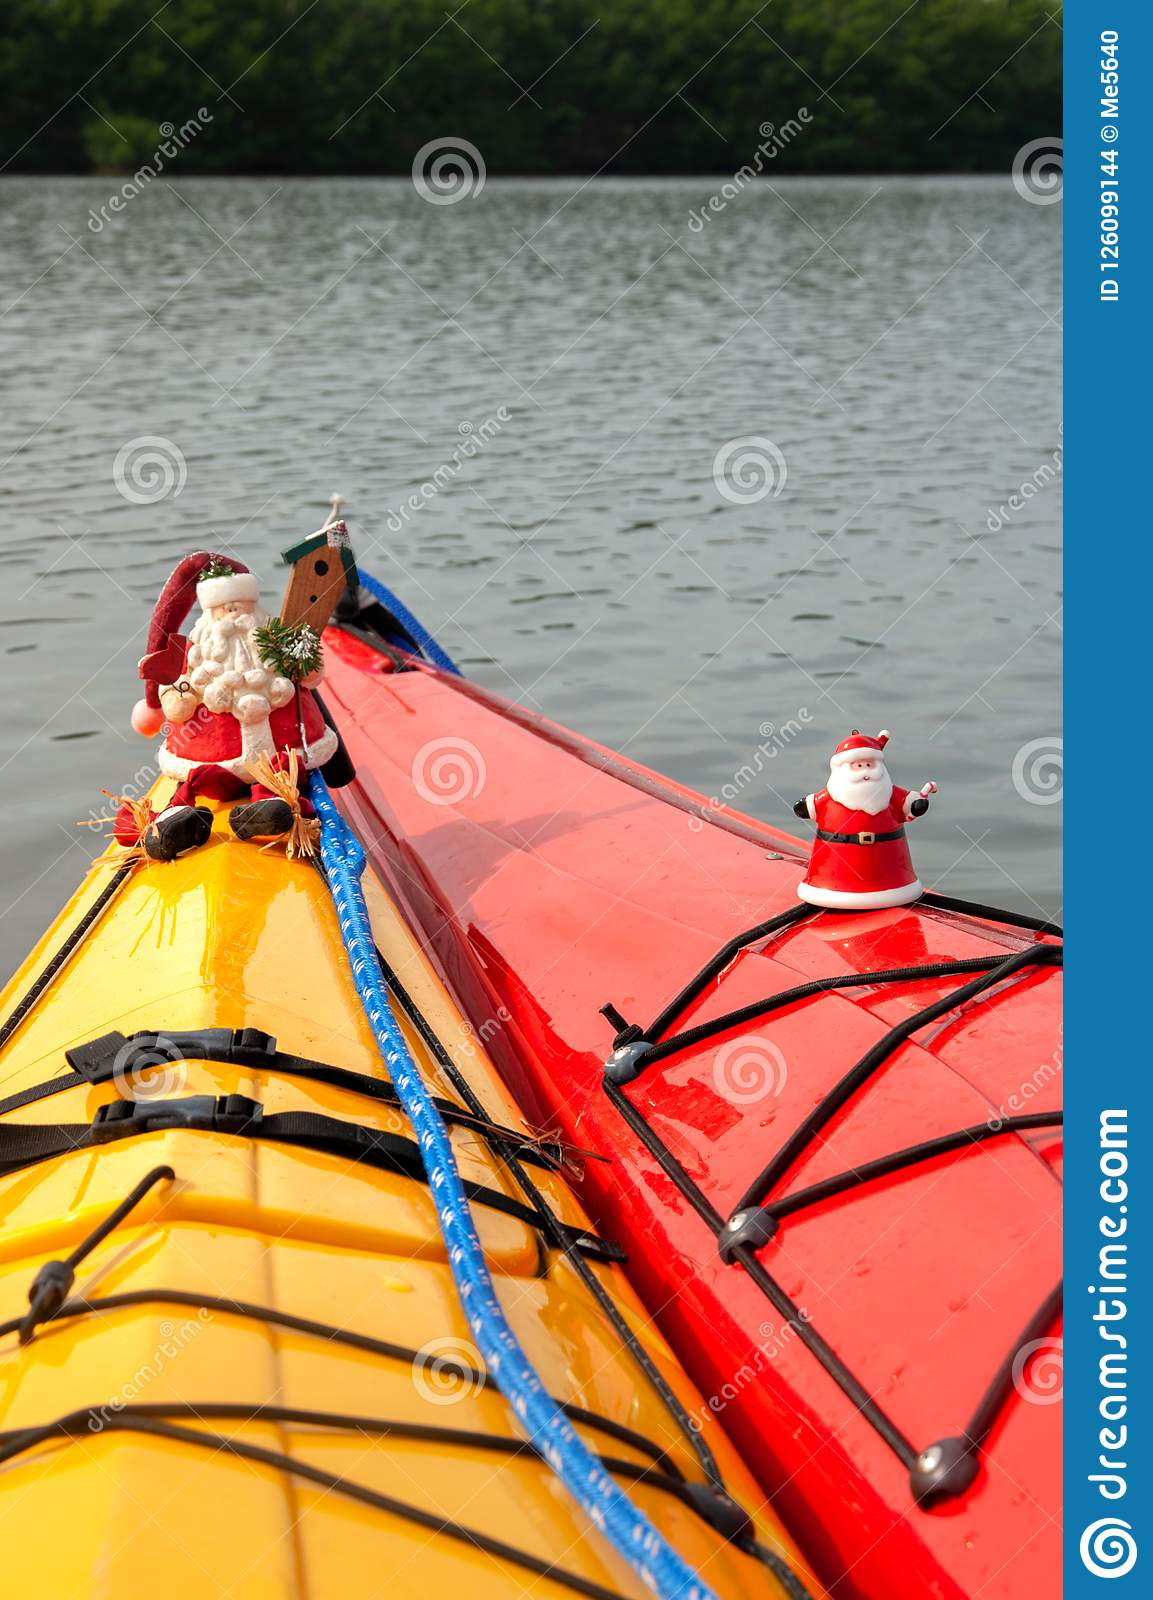 Santa Claus ornaments decorate holiday kayaks.